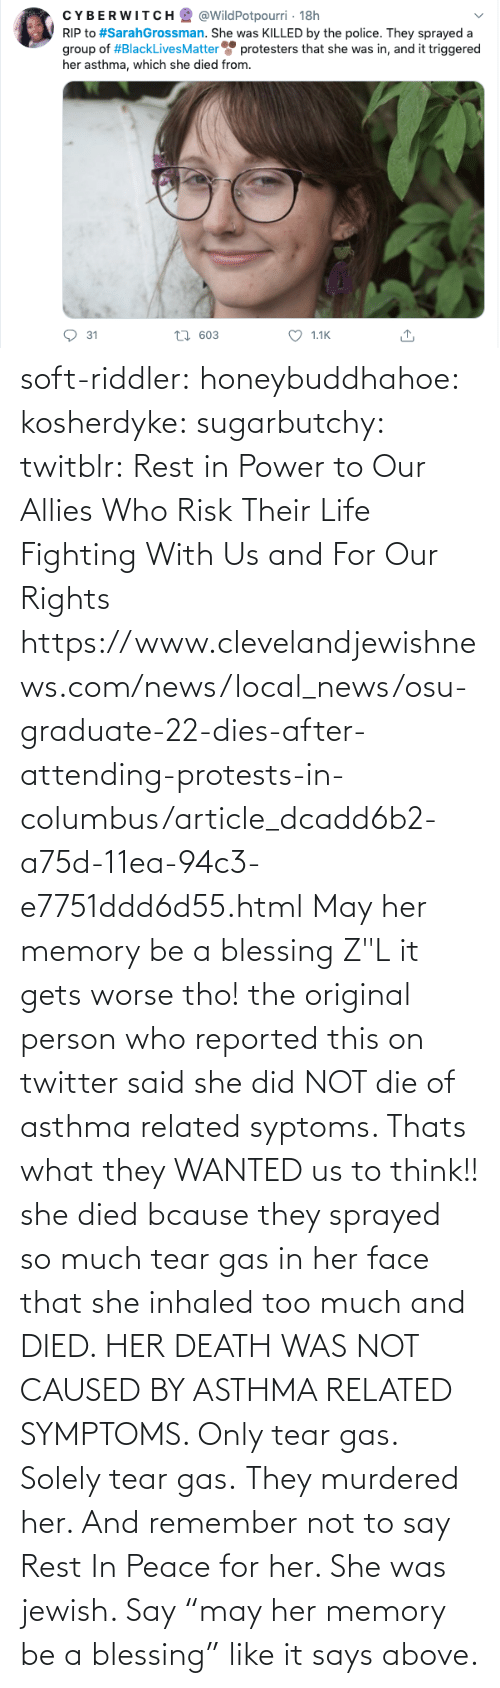 "Dies: soft-riddler:  honeybuddhahoe:  kosherdyke:  sugarbutchy:  twitblr: Rest in Power to Our Allies Who Risk Their Life Fighting With Us and For Our Rights https://www.clevelandjewishnews.com/news/local_news/osu-graduate-22-dies-after-attending-protests-in-columbus/article_dcadd6b2-a75d-11ea-94c3-e7751ddd6d55.html    May her memory be a blessing Z""L  it gets worse tho! the original person who reported this on twitter said she did NOT die of asthma related syptoms. Thats what they WANTED us to think!! she died bcause they sprayed so much tear gas in her face that she inhaled too much and DIED. HER DEATH WAS NOT CAUSED BY ASTHMA RELATED SYMPTOMS. Only tear gas. Solely tear gas. They murdered her.     And remember not to say Rest In Peace for her. She was jewish. Say ""may her memory be a blessing"" like it says above."